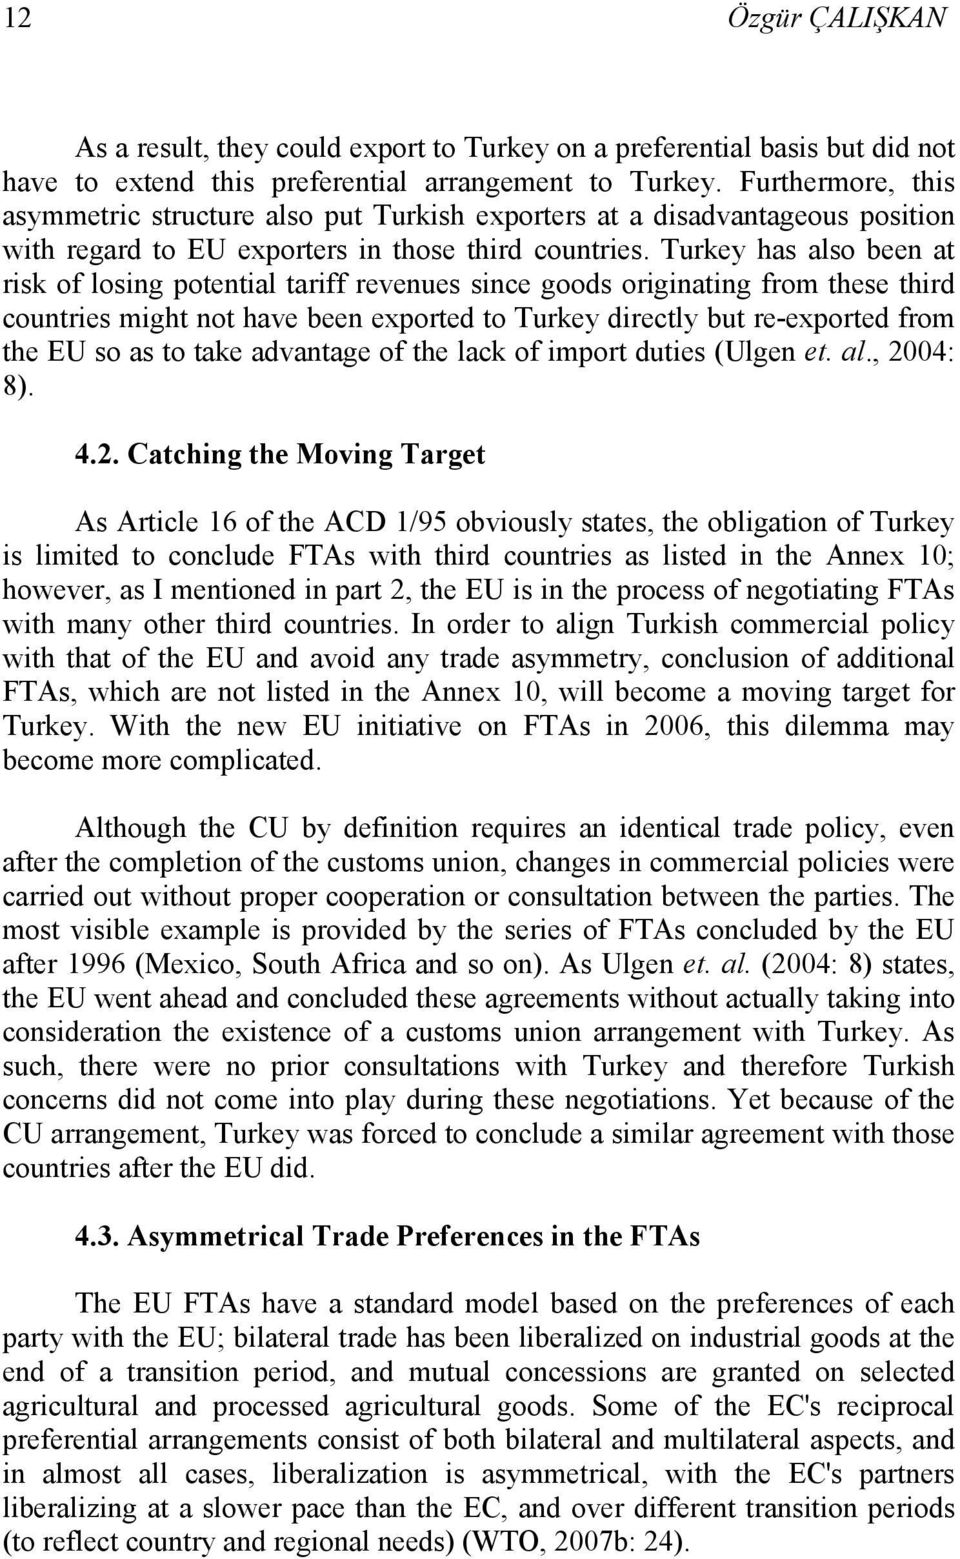 Turkey has also been at risk of losing potential tariff revenues since goods originating from these third countries might not have been exported to Turkey directly but re-exported from the EU so as